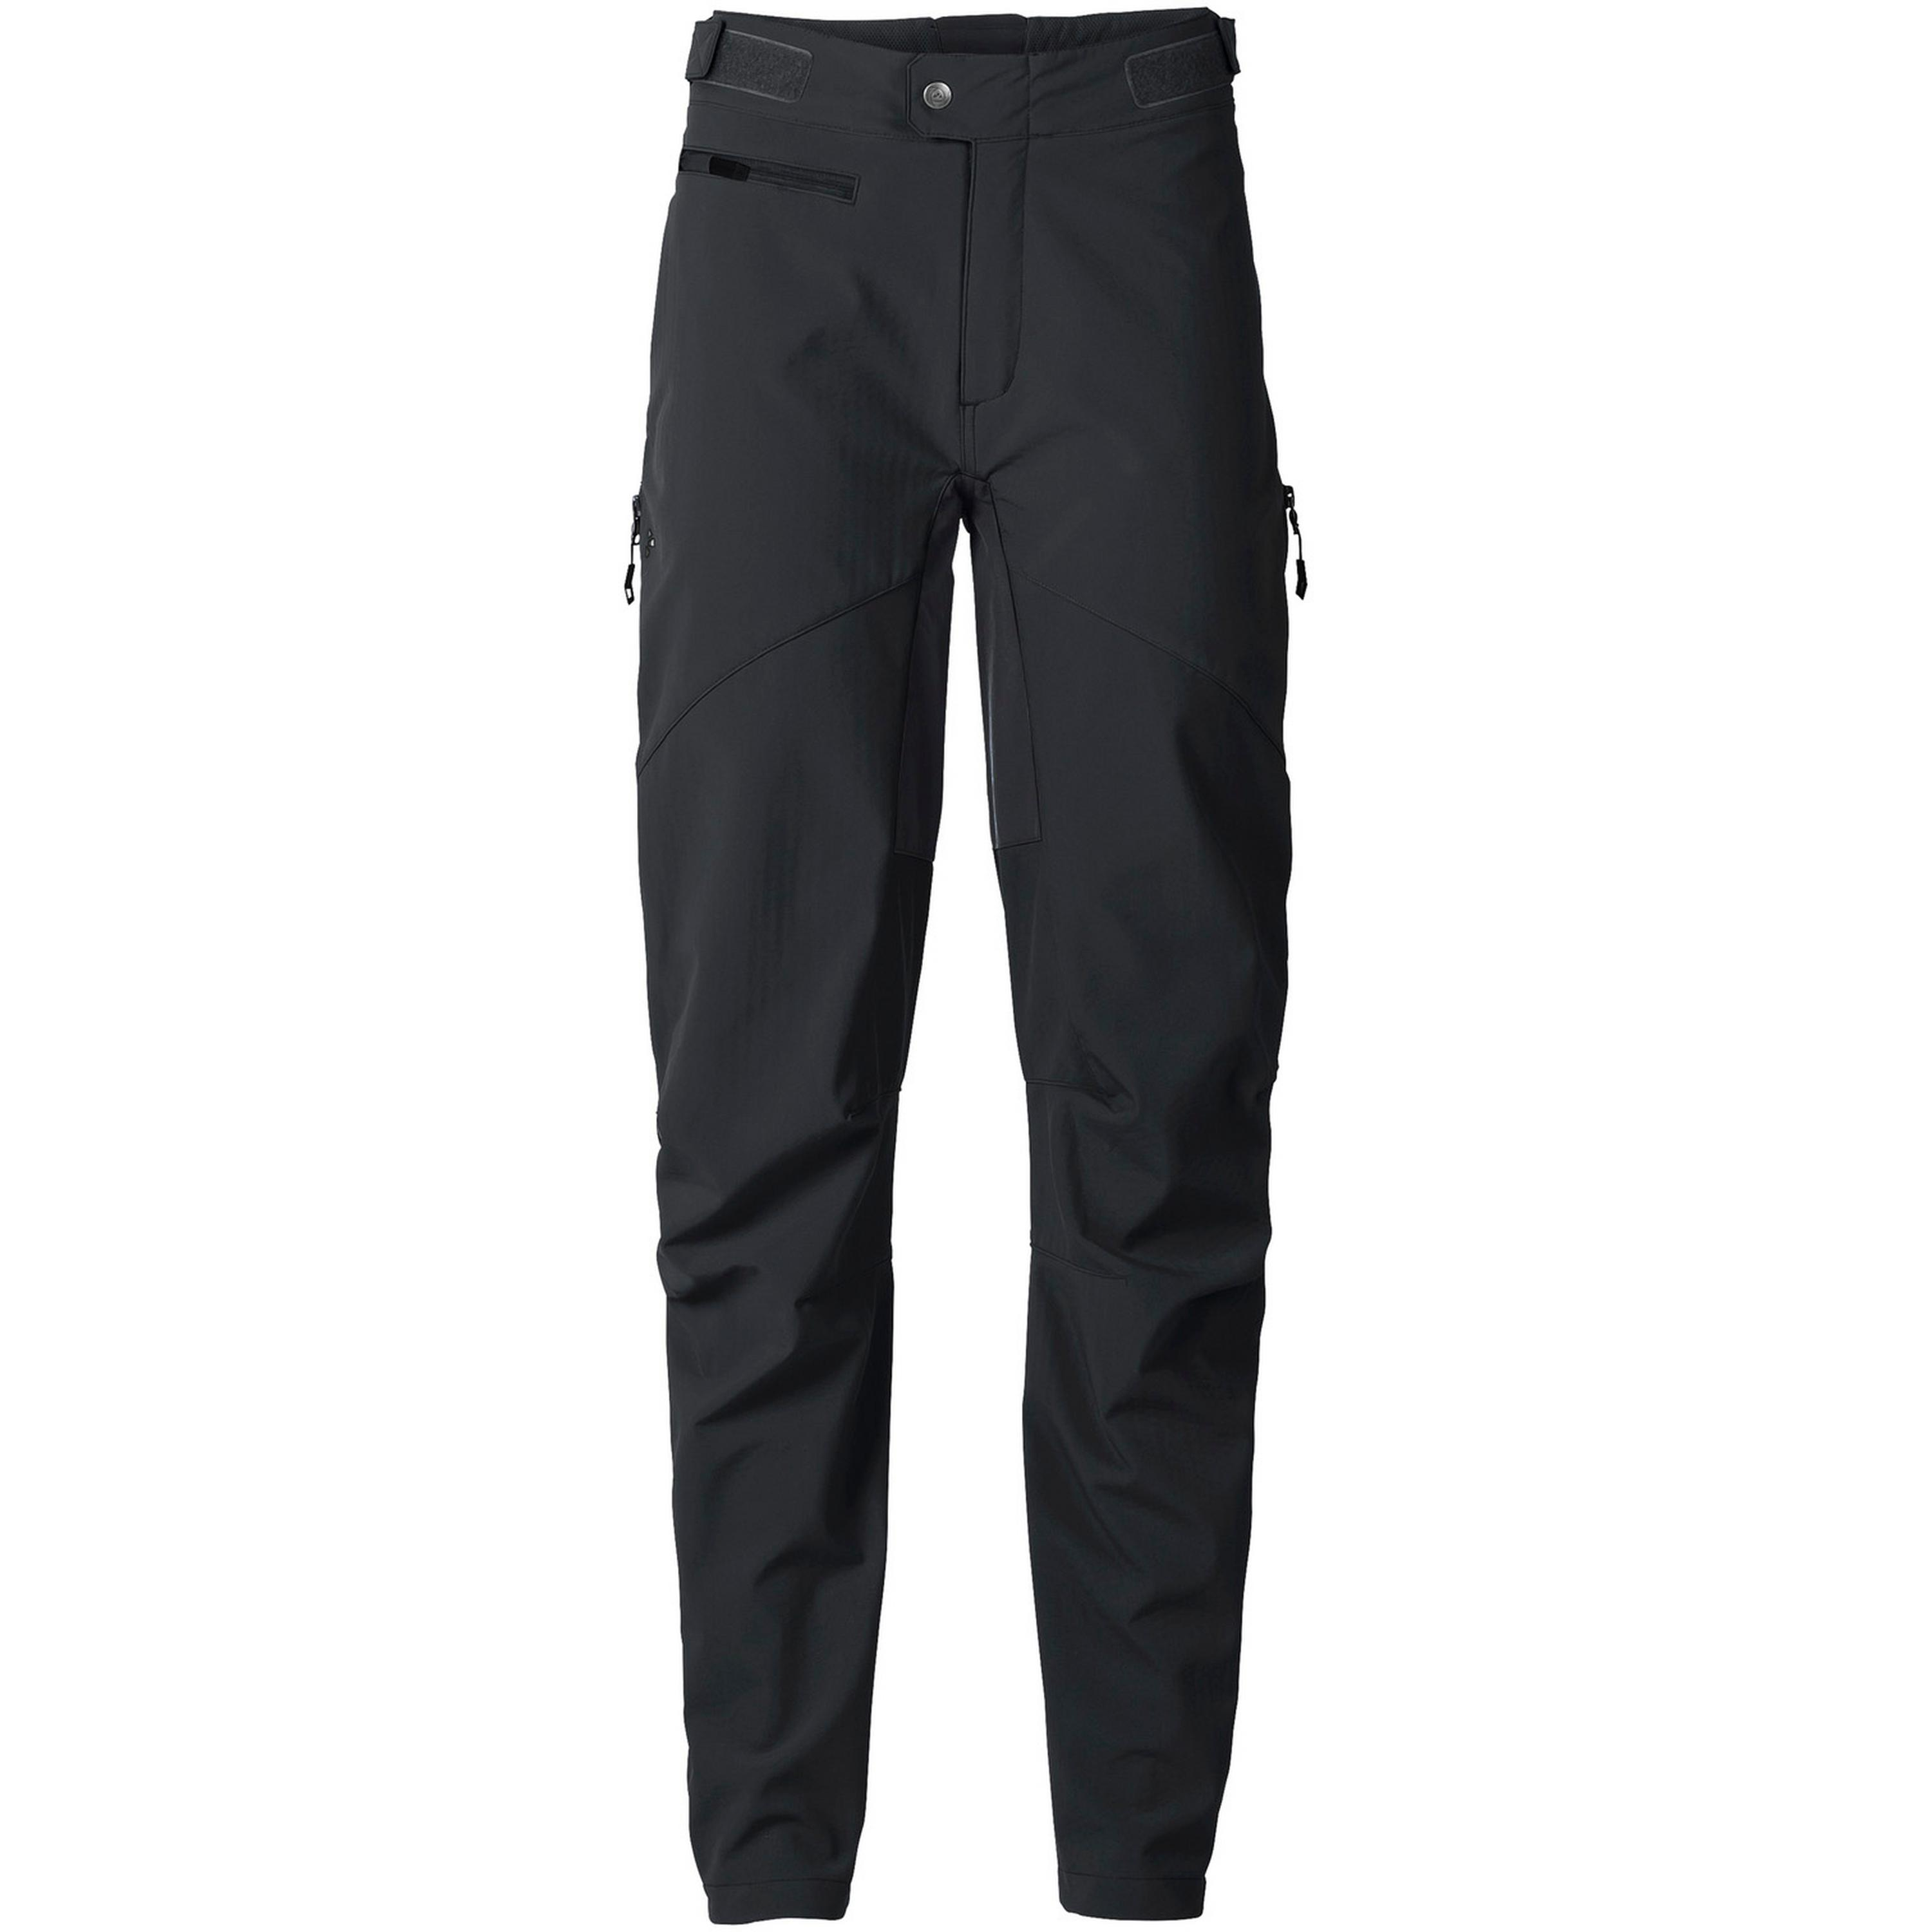 Image of VAUDE Women´s Qimsa Softshell Pants II Fahrradhose